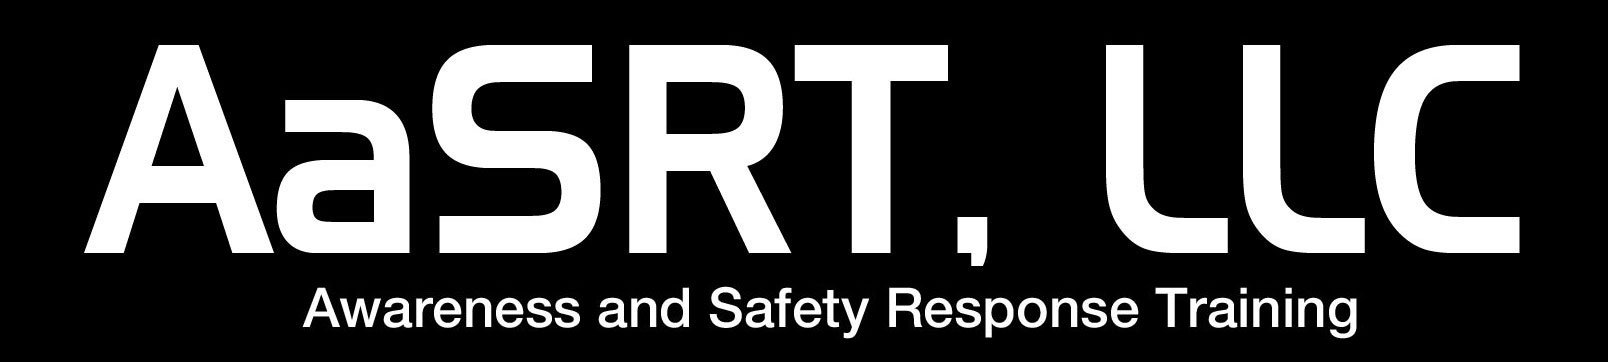 Awareness and Safety Response Training